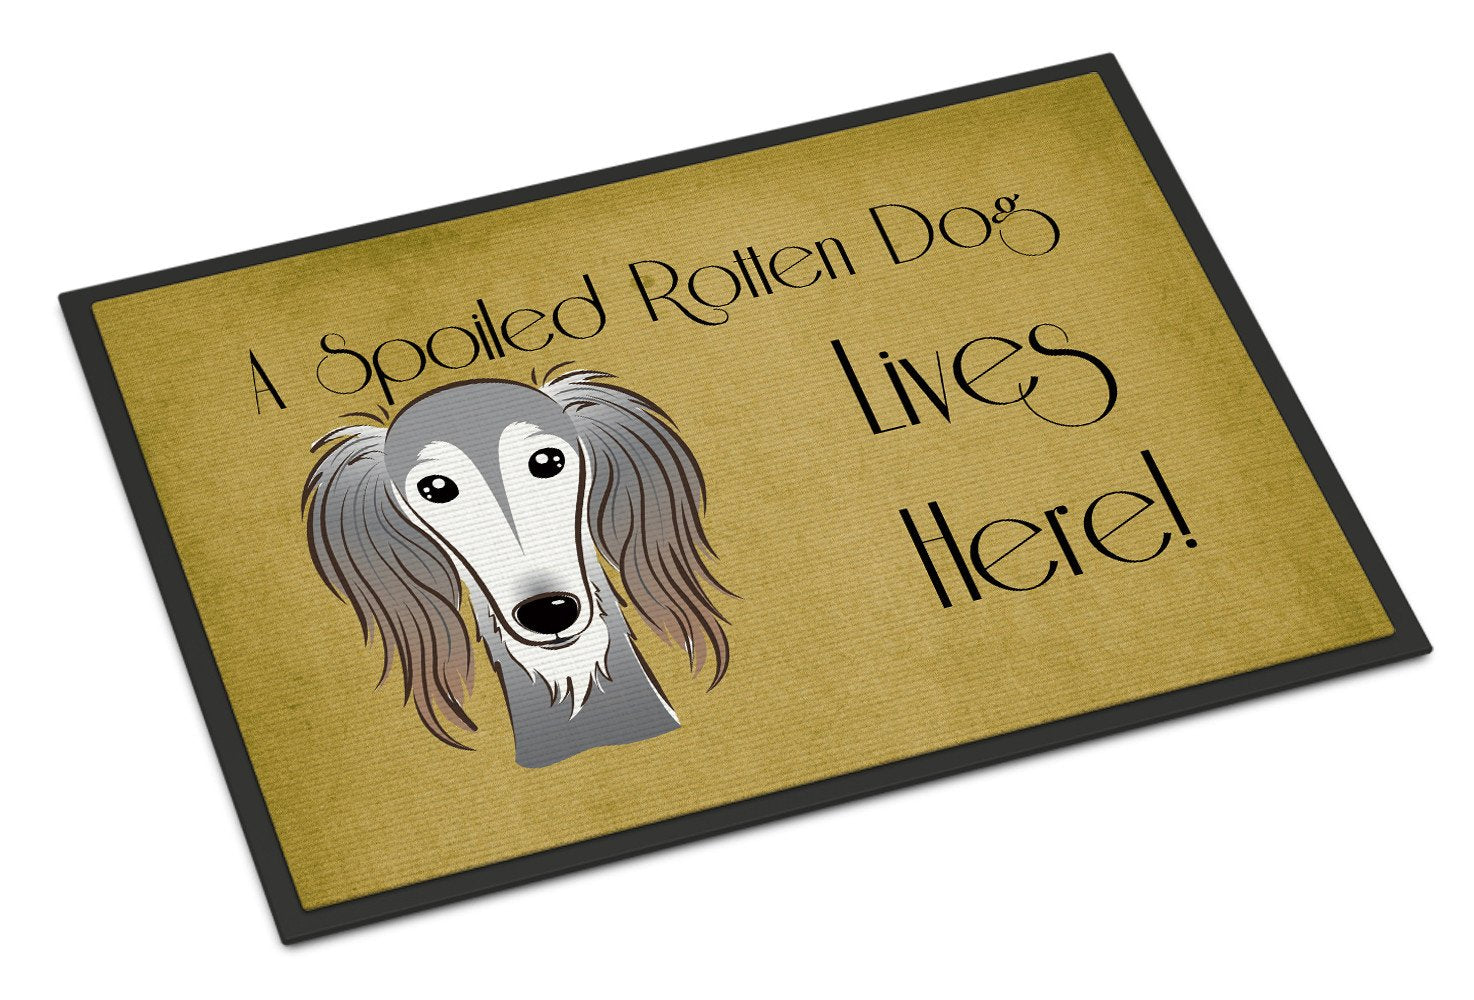 Saluki Spoiled Dog Lives Here Indoor or Outdoor Mat 18x27 BB1477MAT - the-store.com